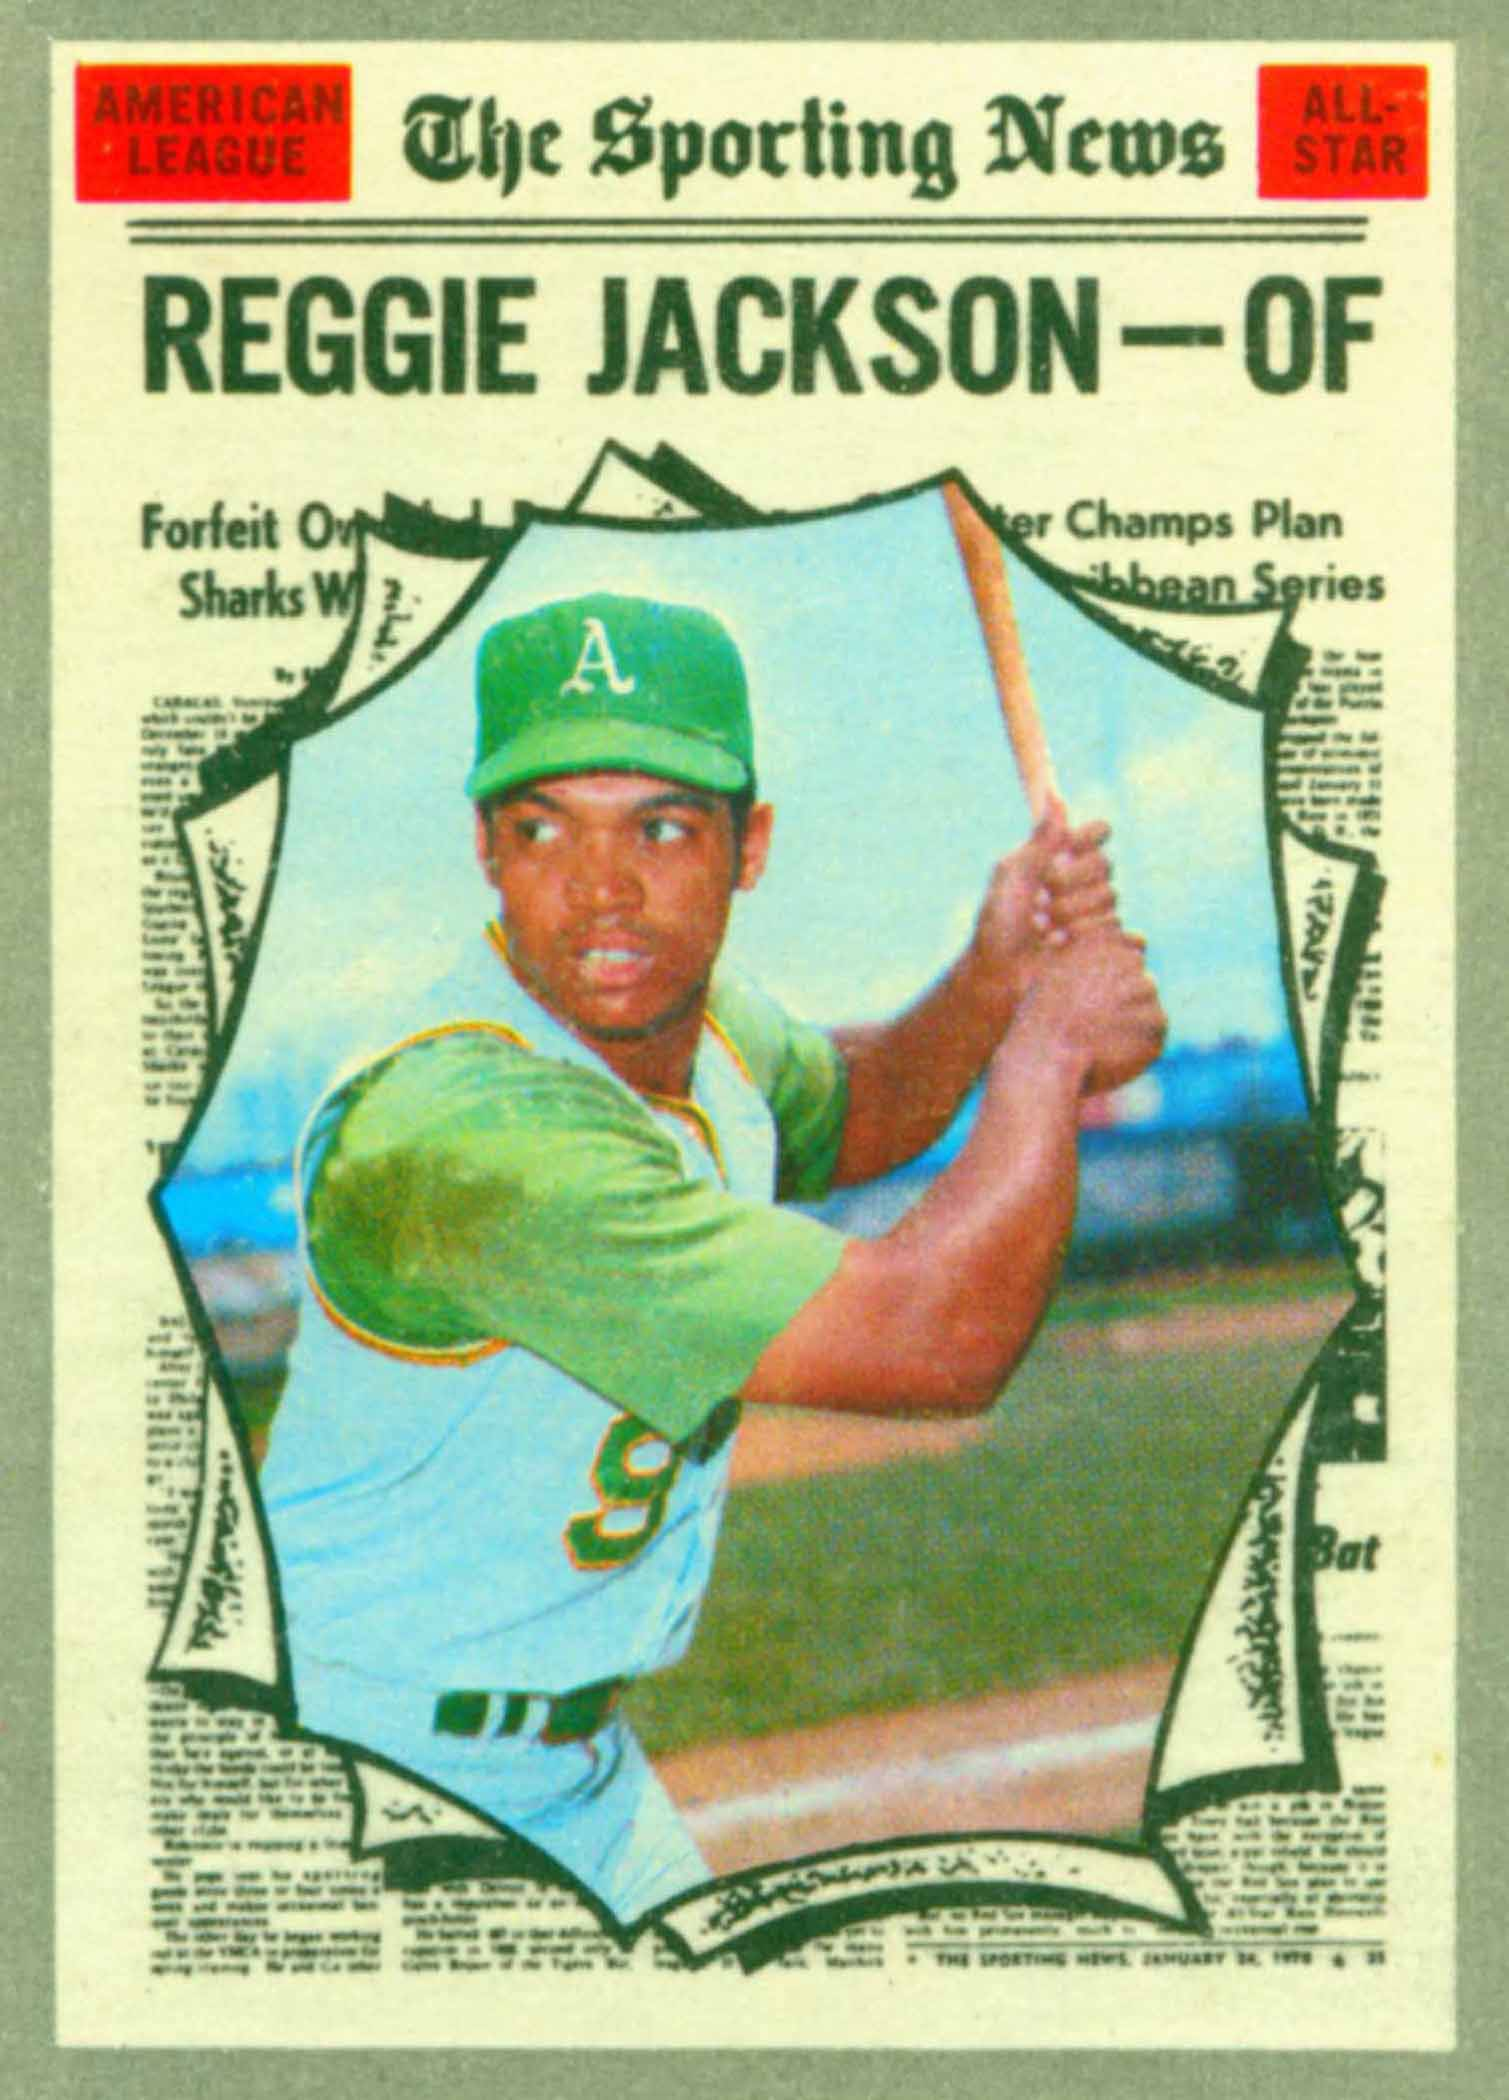 1970 Topps All-Star